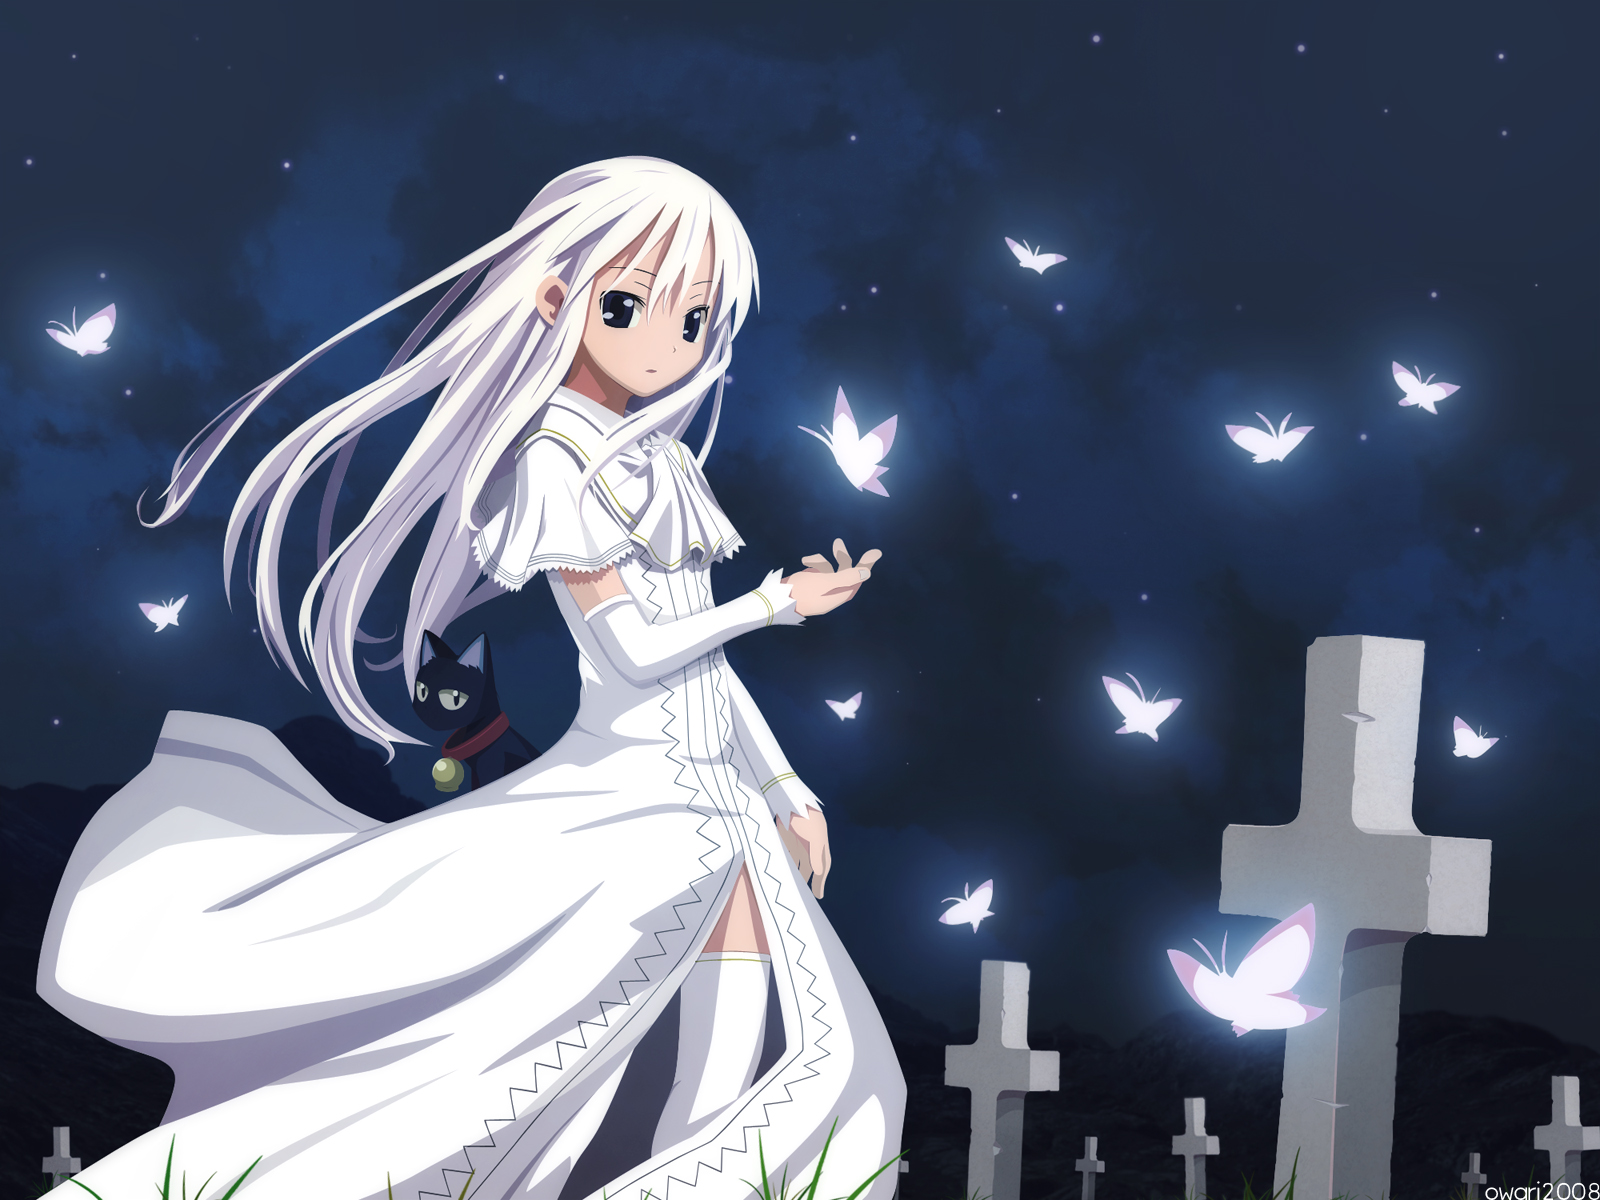 Anime Girl Shinigami Images & Pictures - Becuo